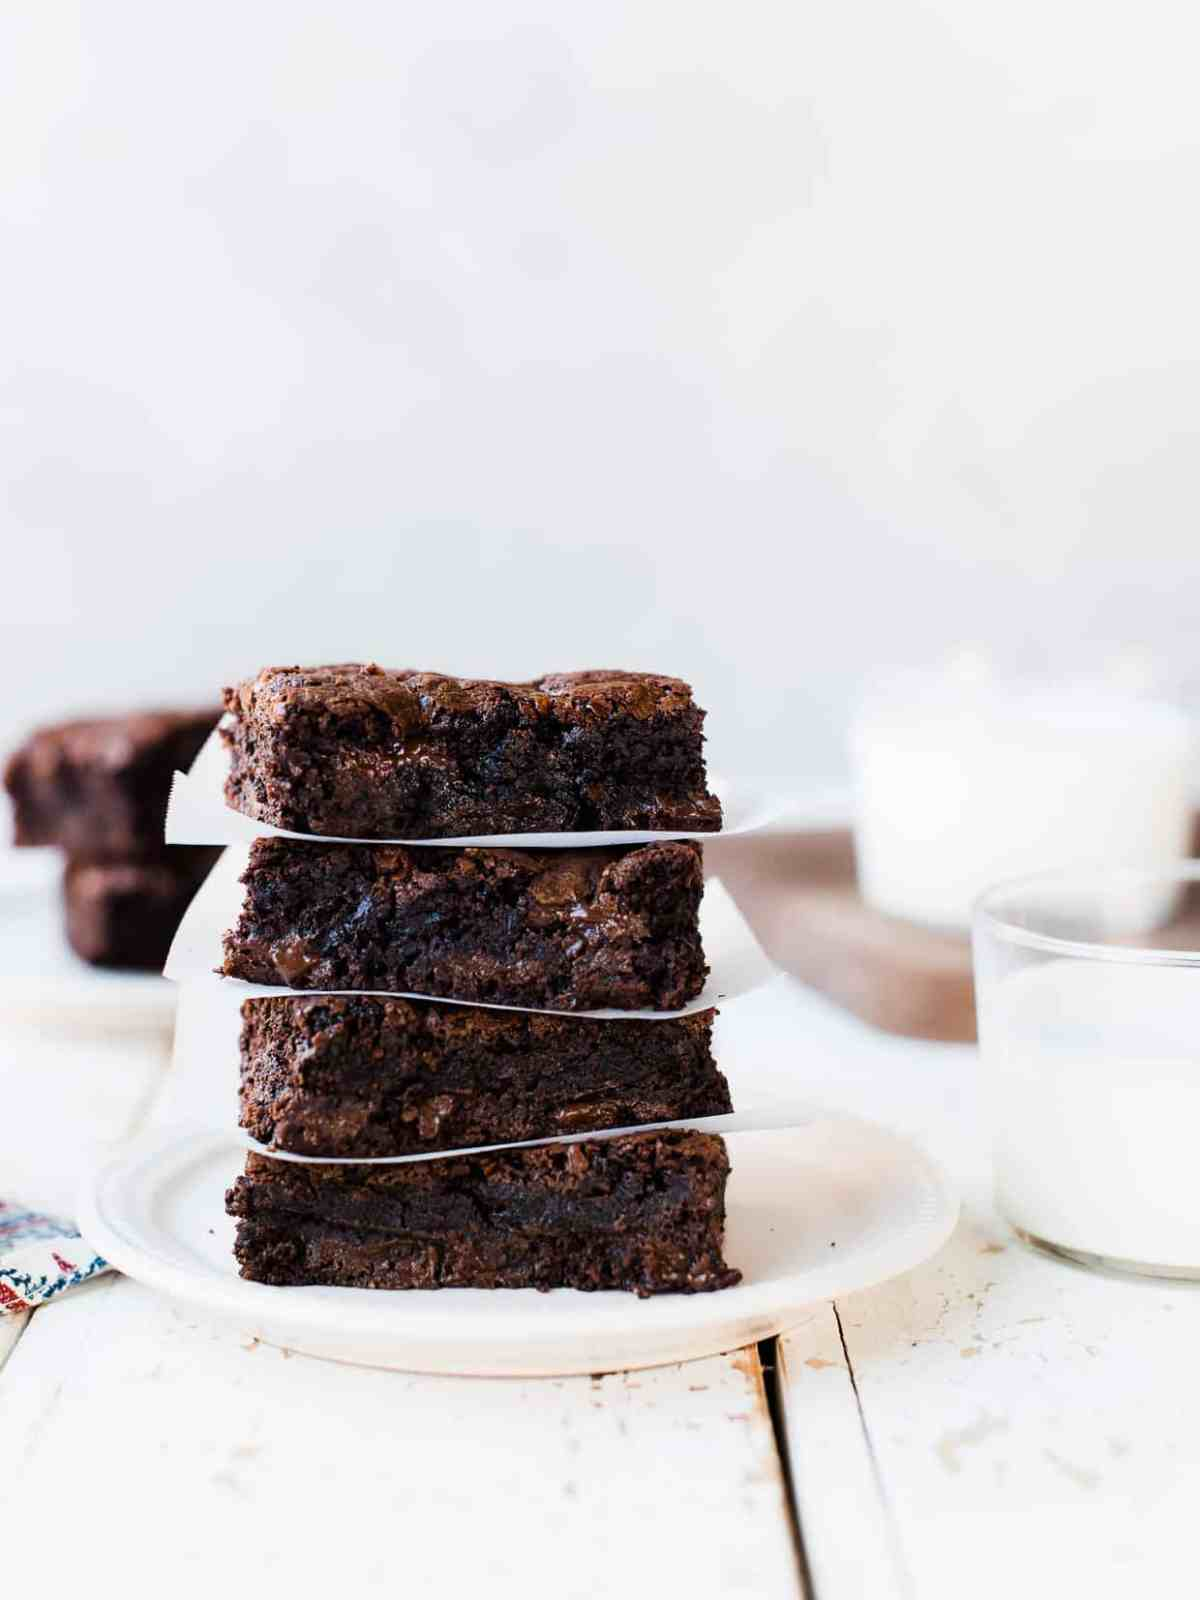 Stack of decadent homemade brownies on a plate, with parchment paper.